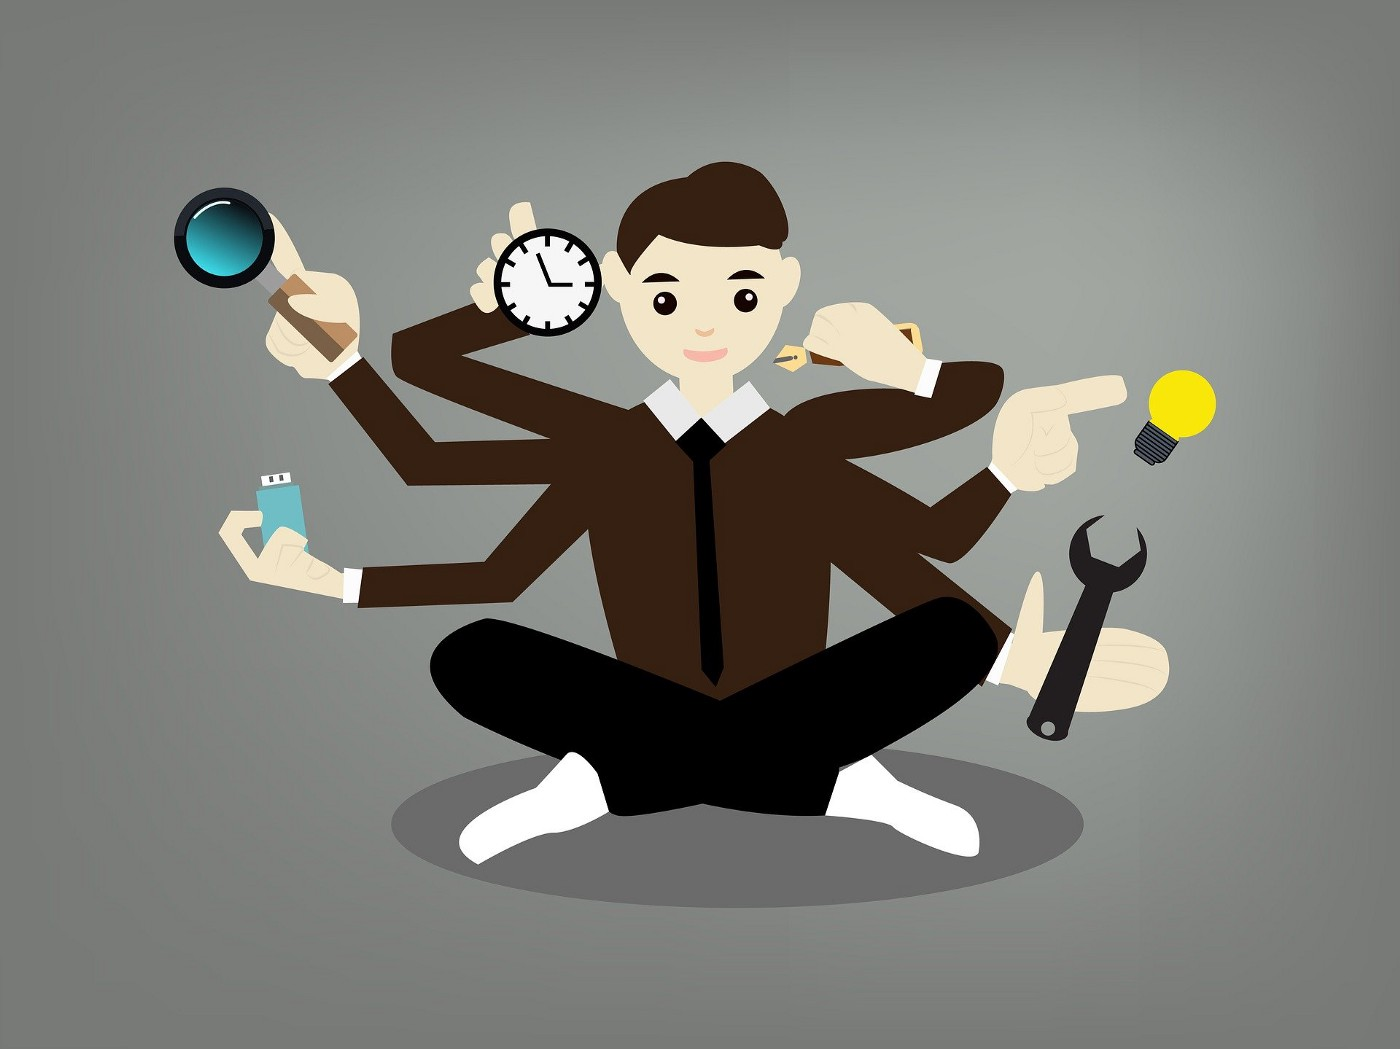 Person with many arms holding a clock, wrench, magnifying glass, light bulb, pen, and usb